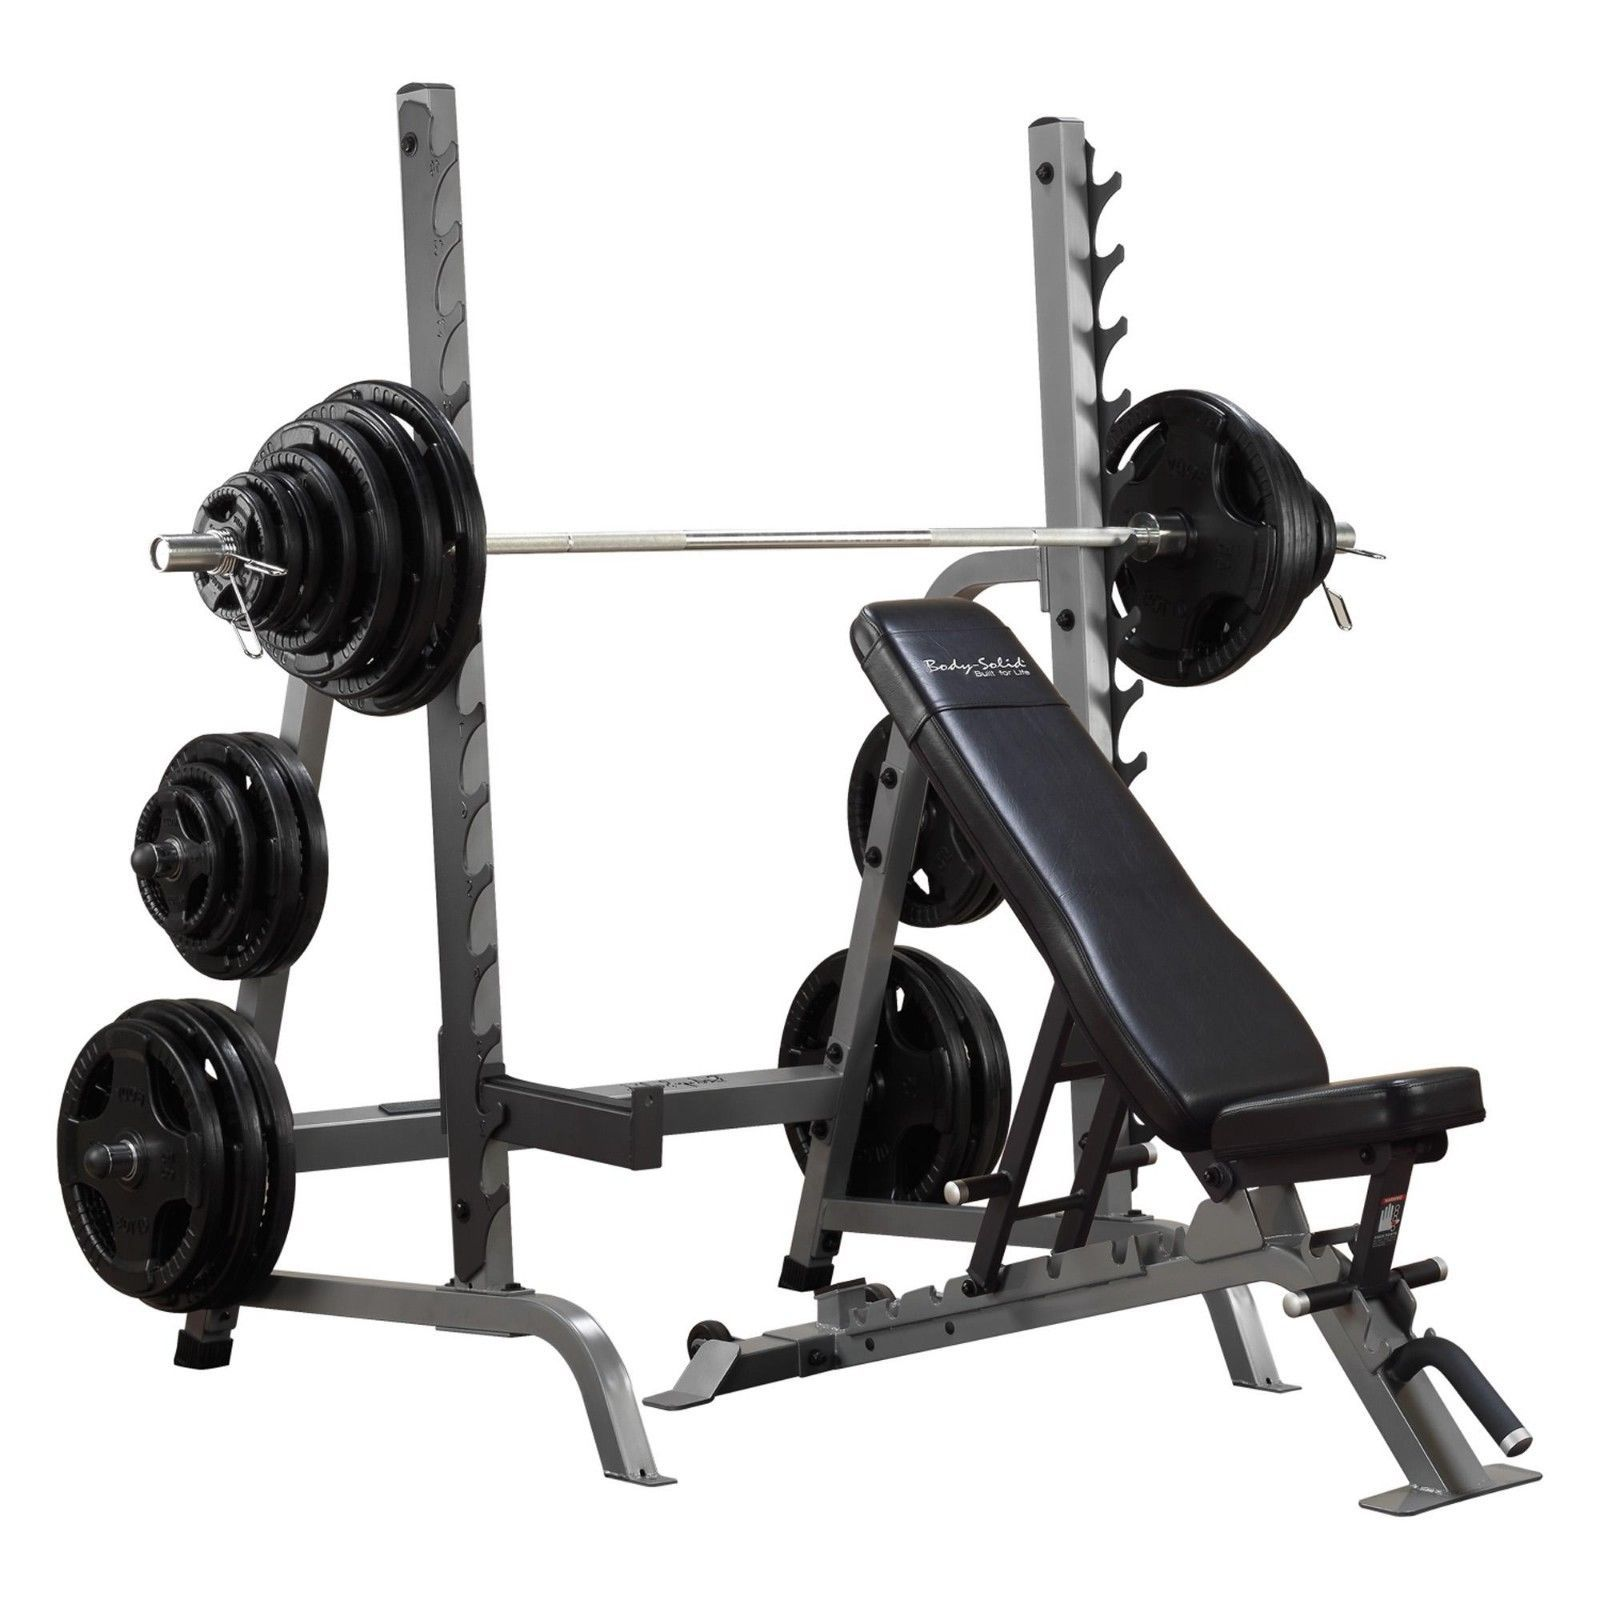 BodySolid Squat Rack & Bench Press with Adjustable Bench